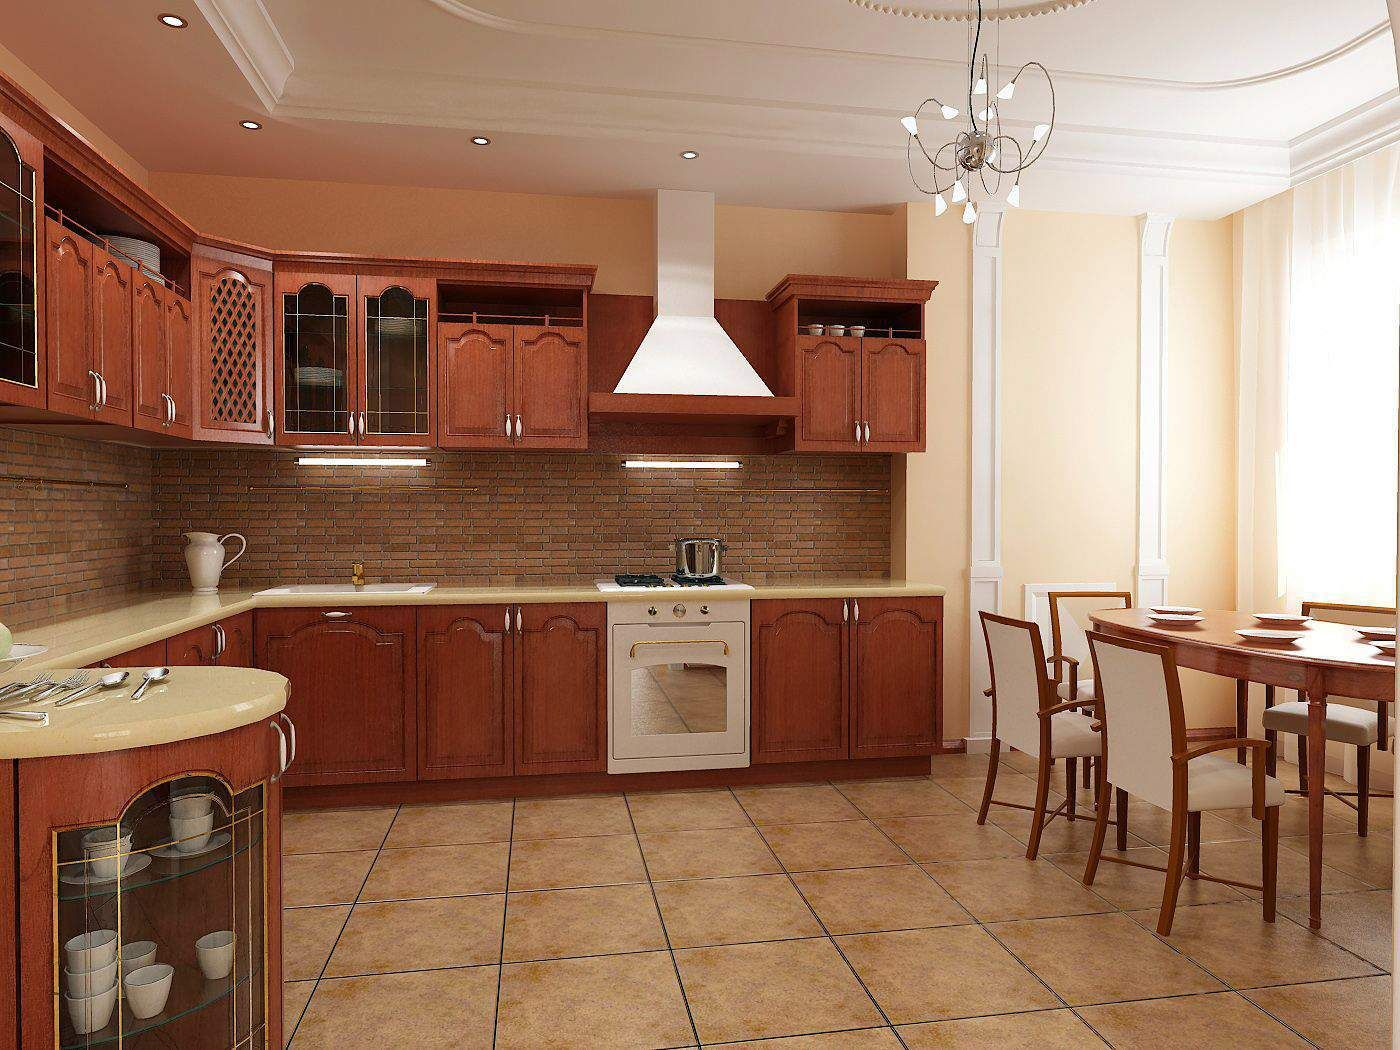 kitchen interior design ideas small space style dining kitchen